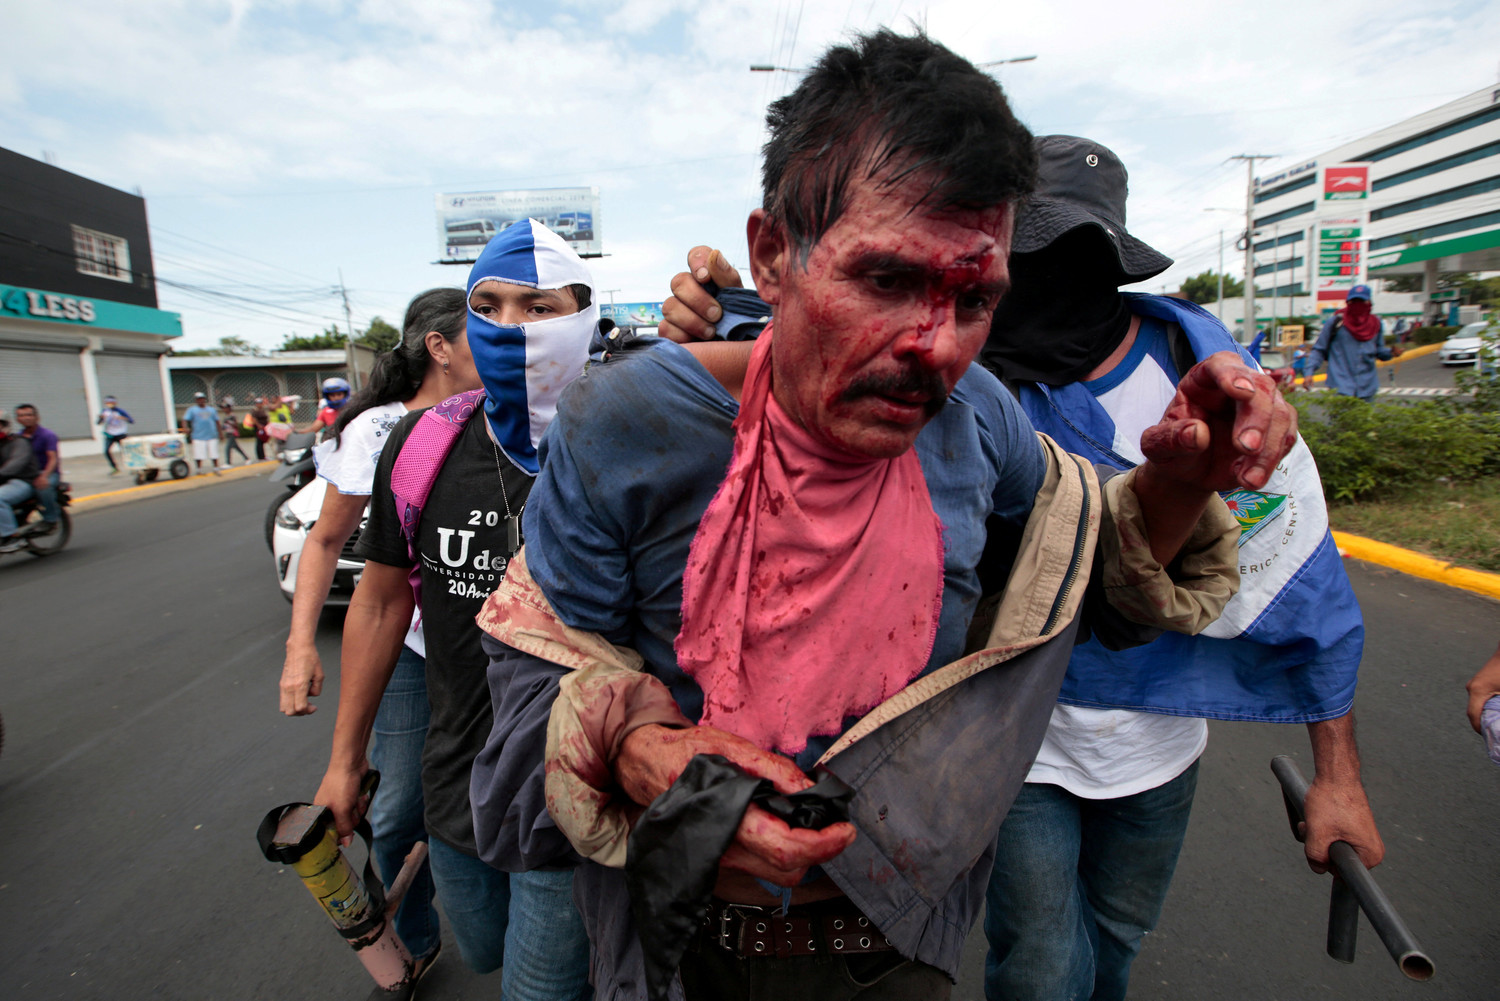 Protesters capture an injured man suspected of being a collaborator of Nicaraguan President Daniel Ortega's government after a June 30 protest in Managua. Cardinal Leopoldo Brenes Solorzano of Managua was among Nicaraguan bishops and clergy attacked by armed groups aligned with the government July 9 in the city of Diriamba.